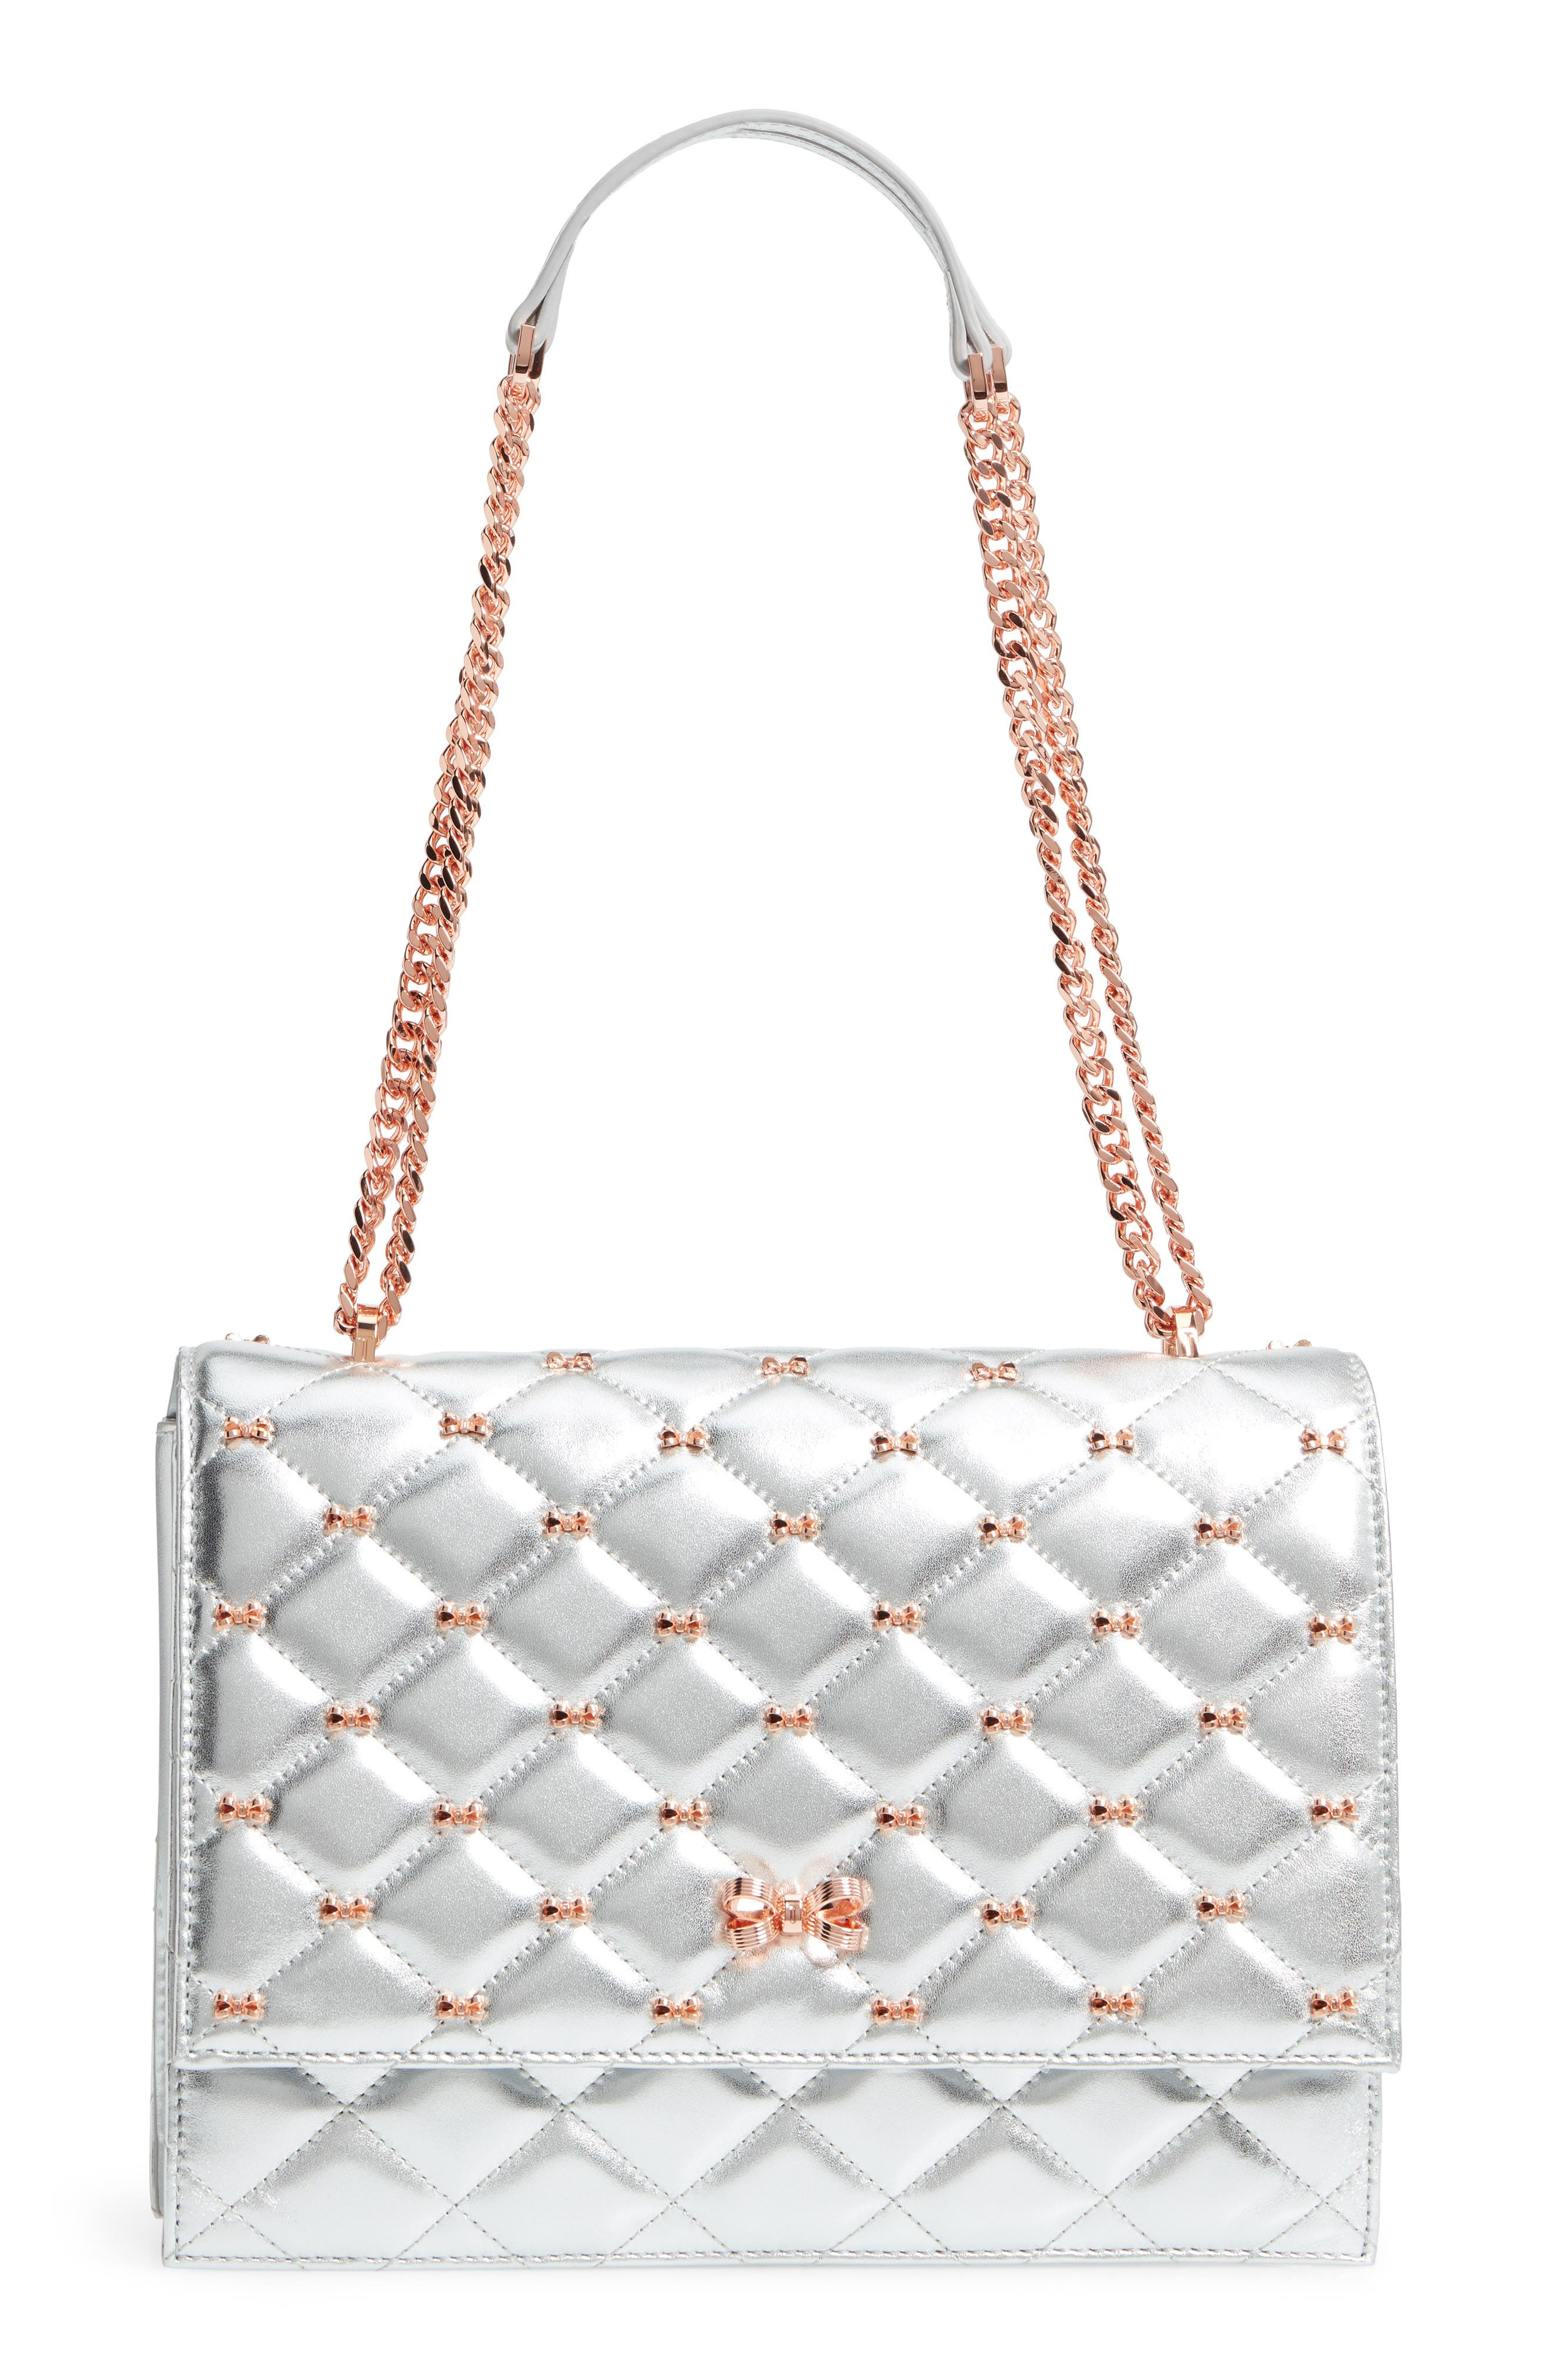 Bow Quilted Leather Shoulder Bag,                             Main thumbnail 1, color,                             SILVER